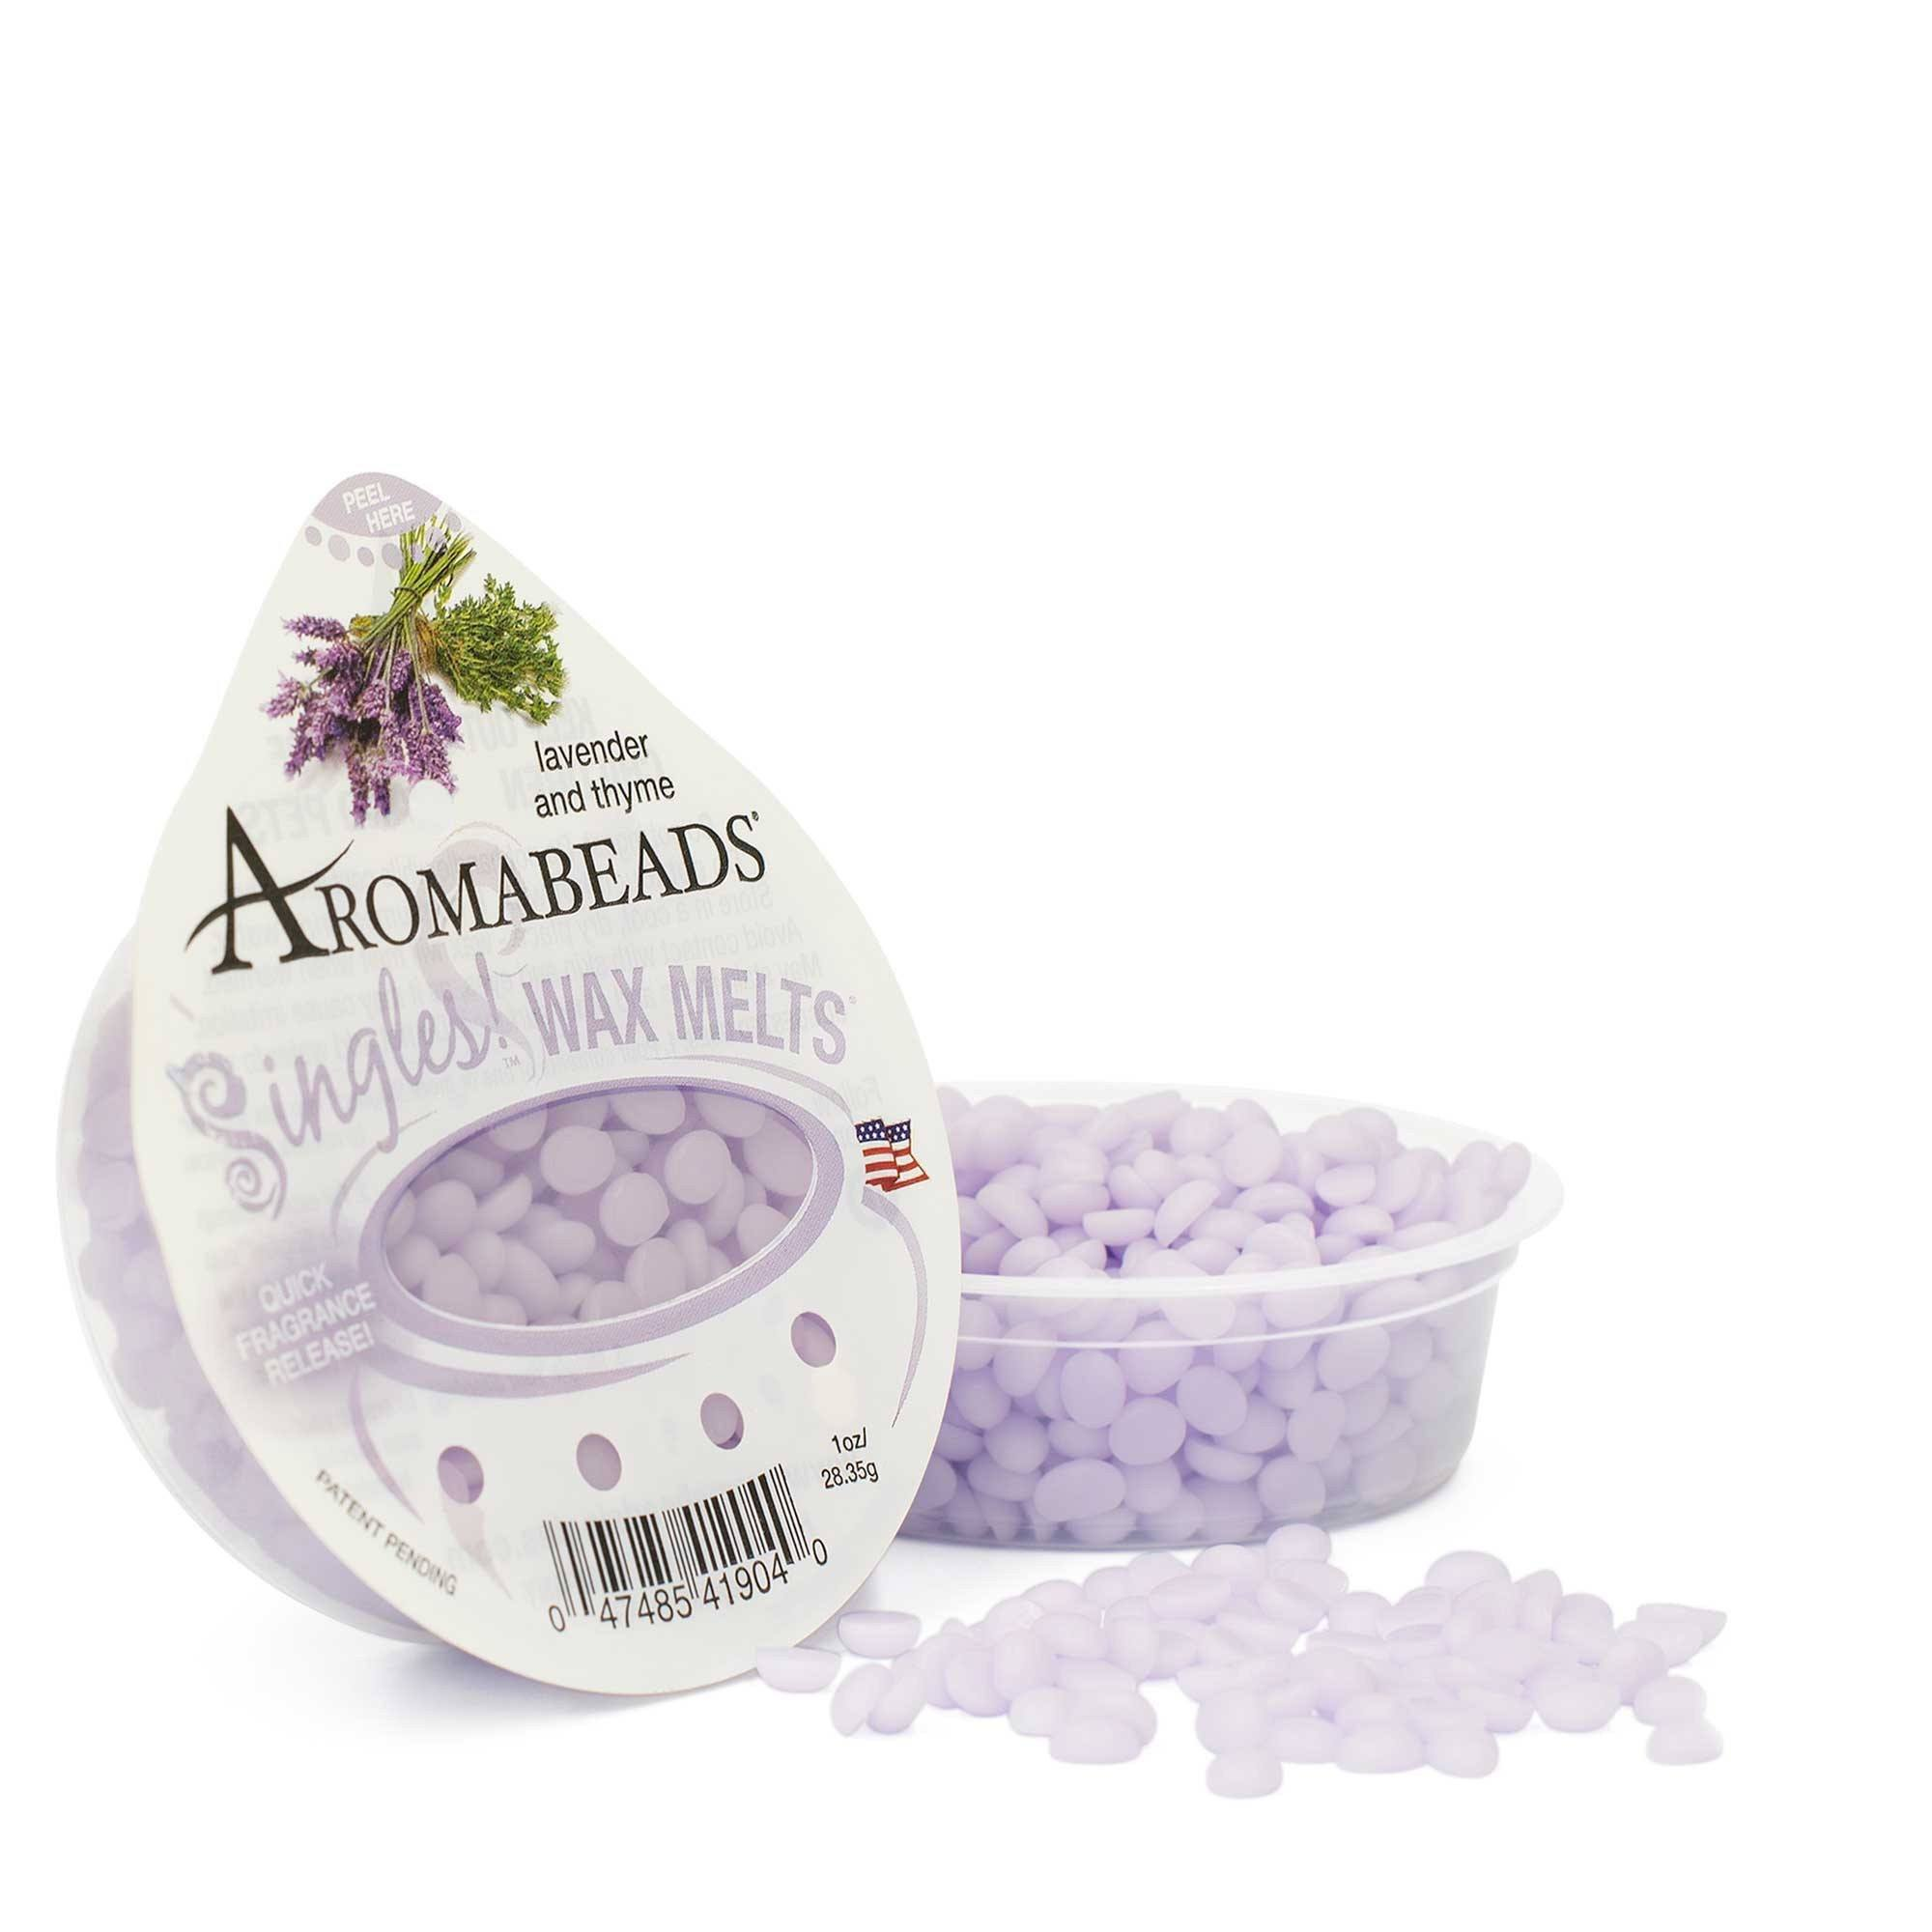 Aromabeads Singles Lavender Thyme Wax Melts 10 Pack Melts Candlemart.com $ 11.49